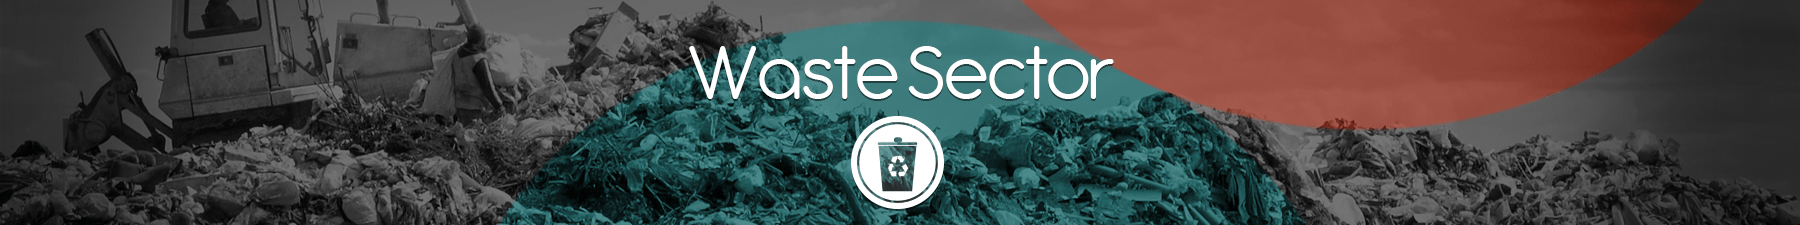 Waste-sector